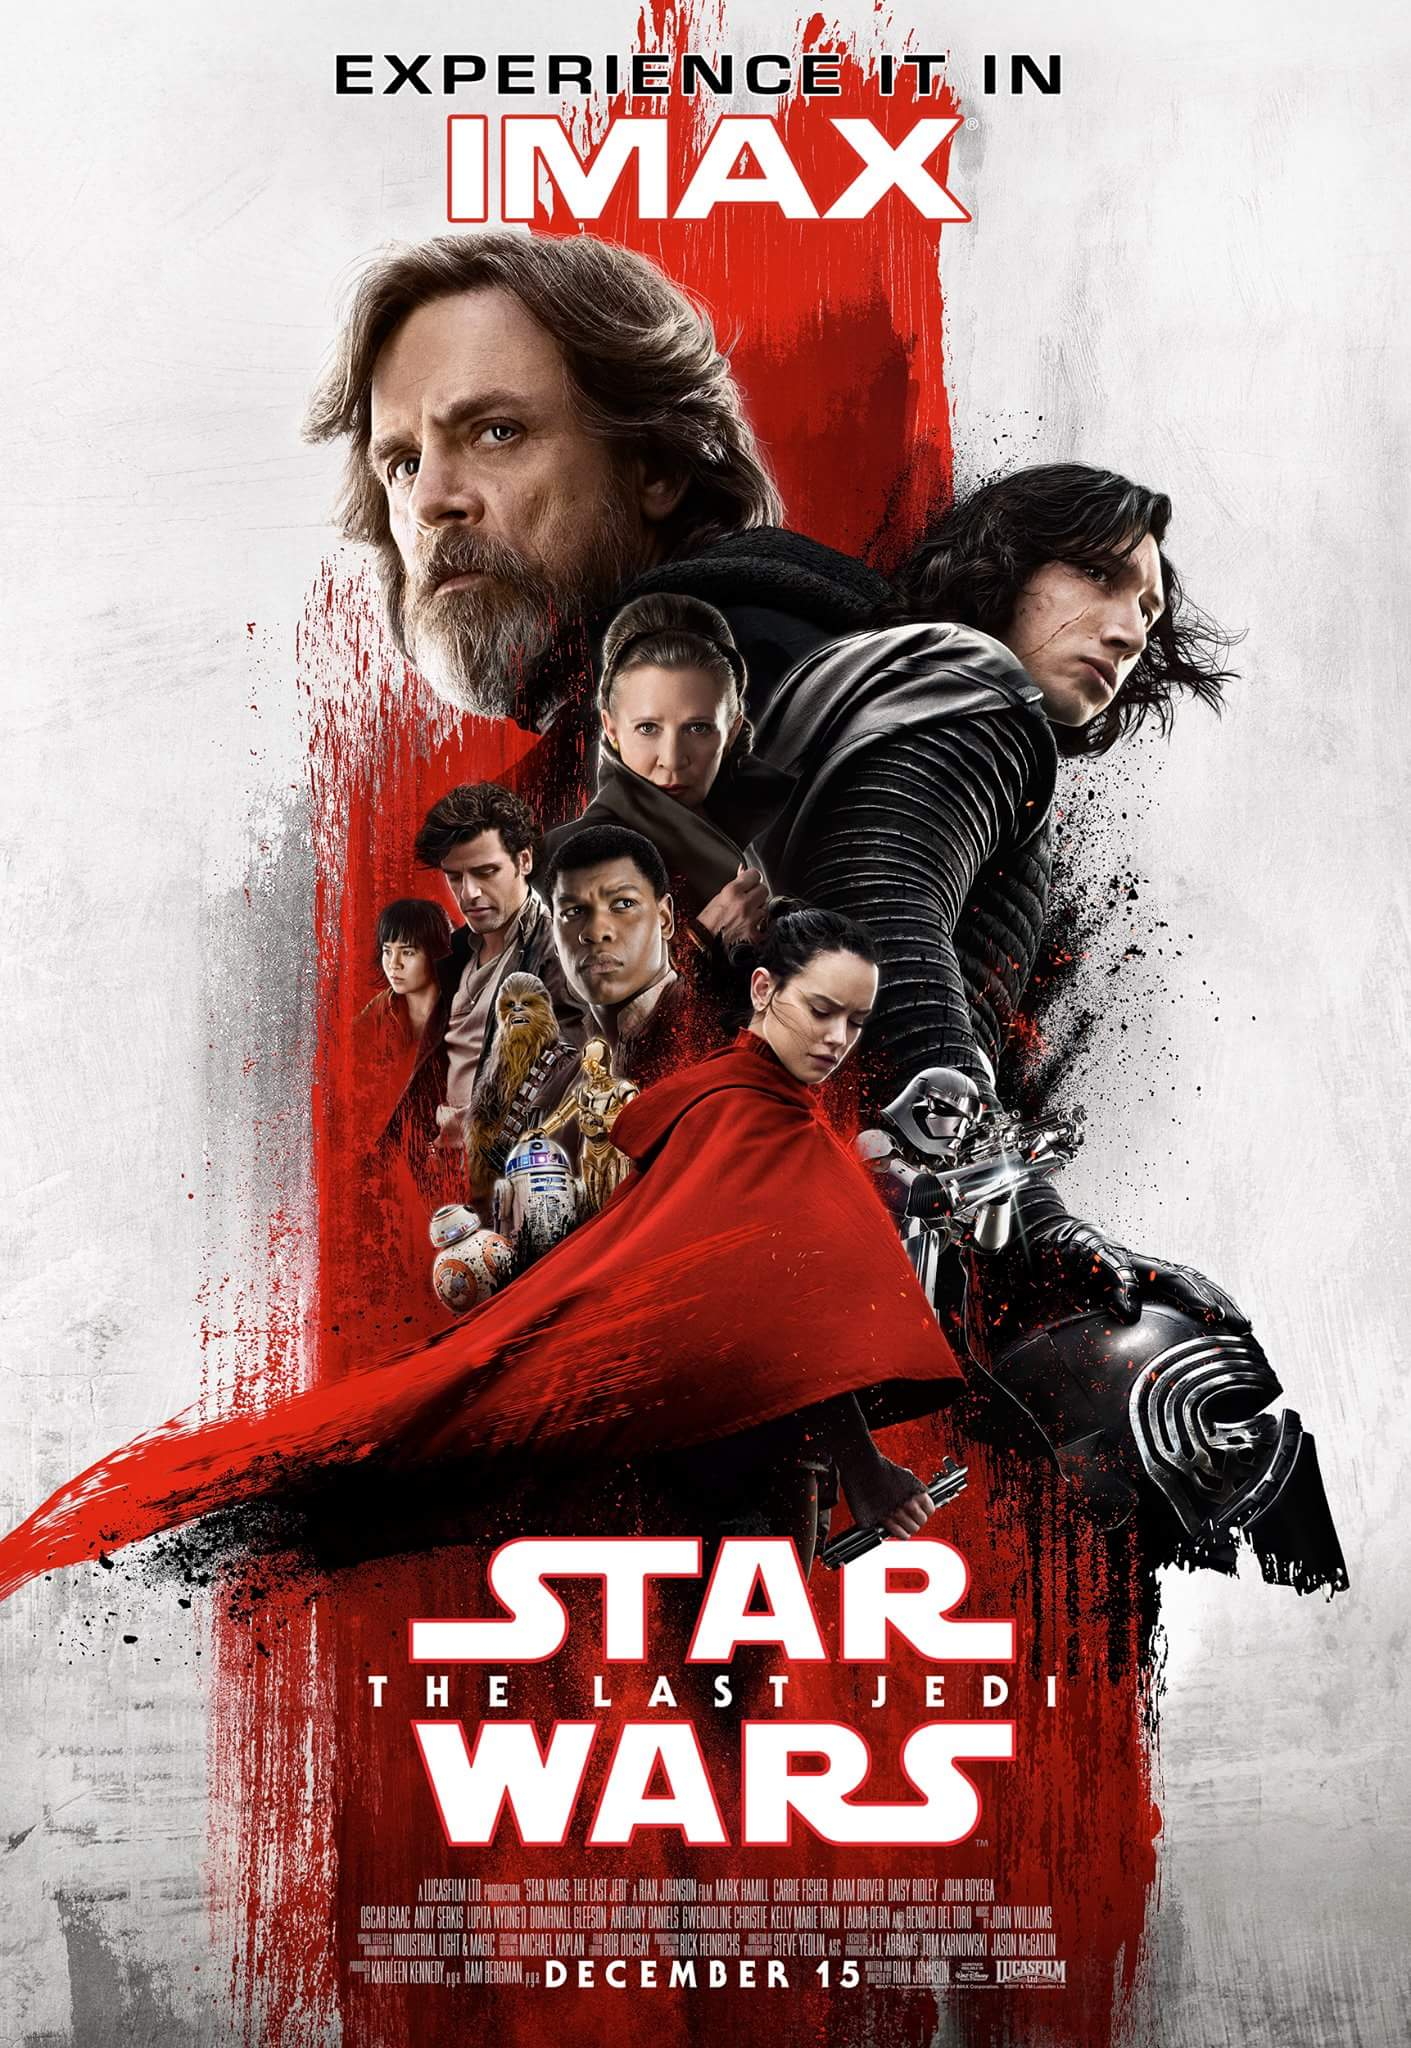 Star Wars The Last Jedi Imax Poster Debuts Online Star Wars The Rise Of Skywalker Movie News